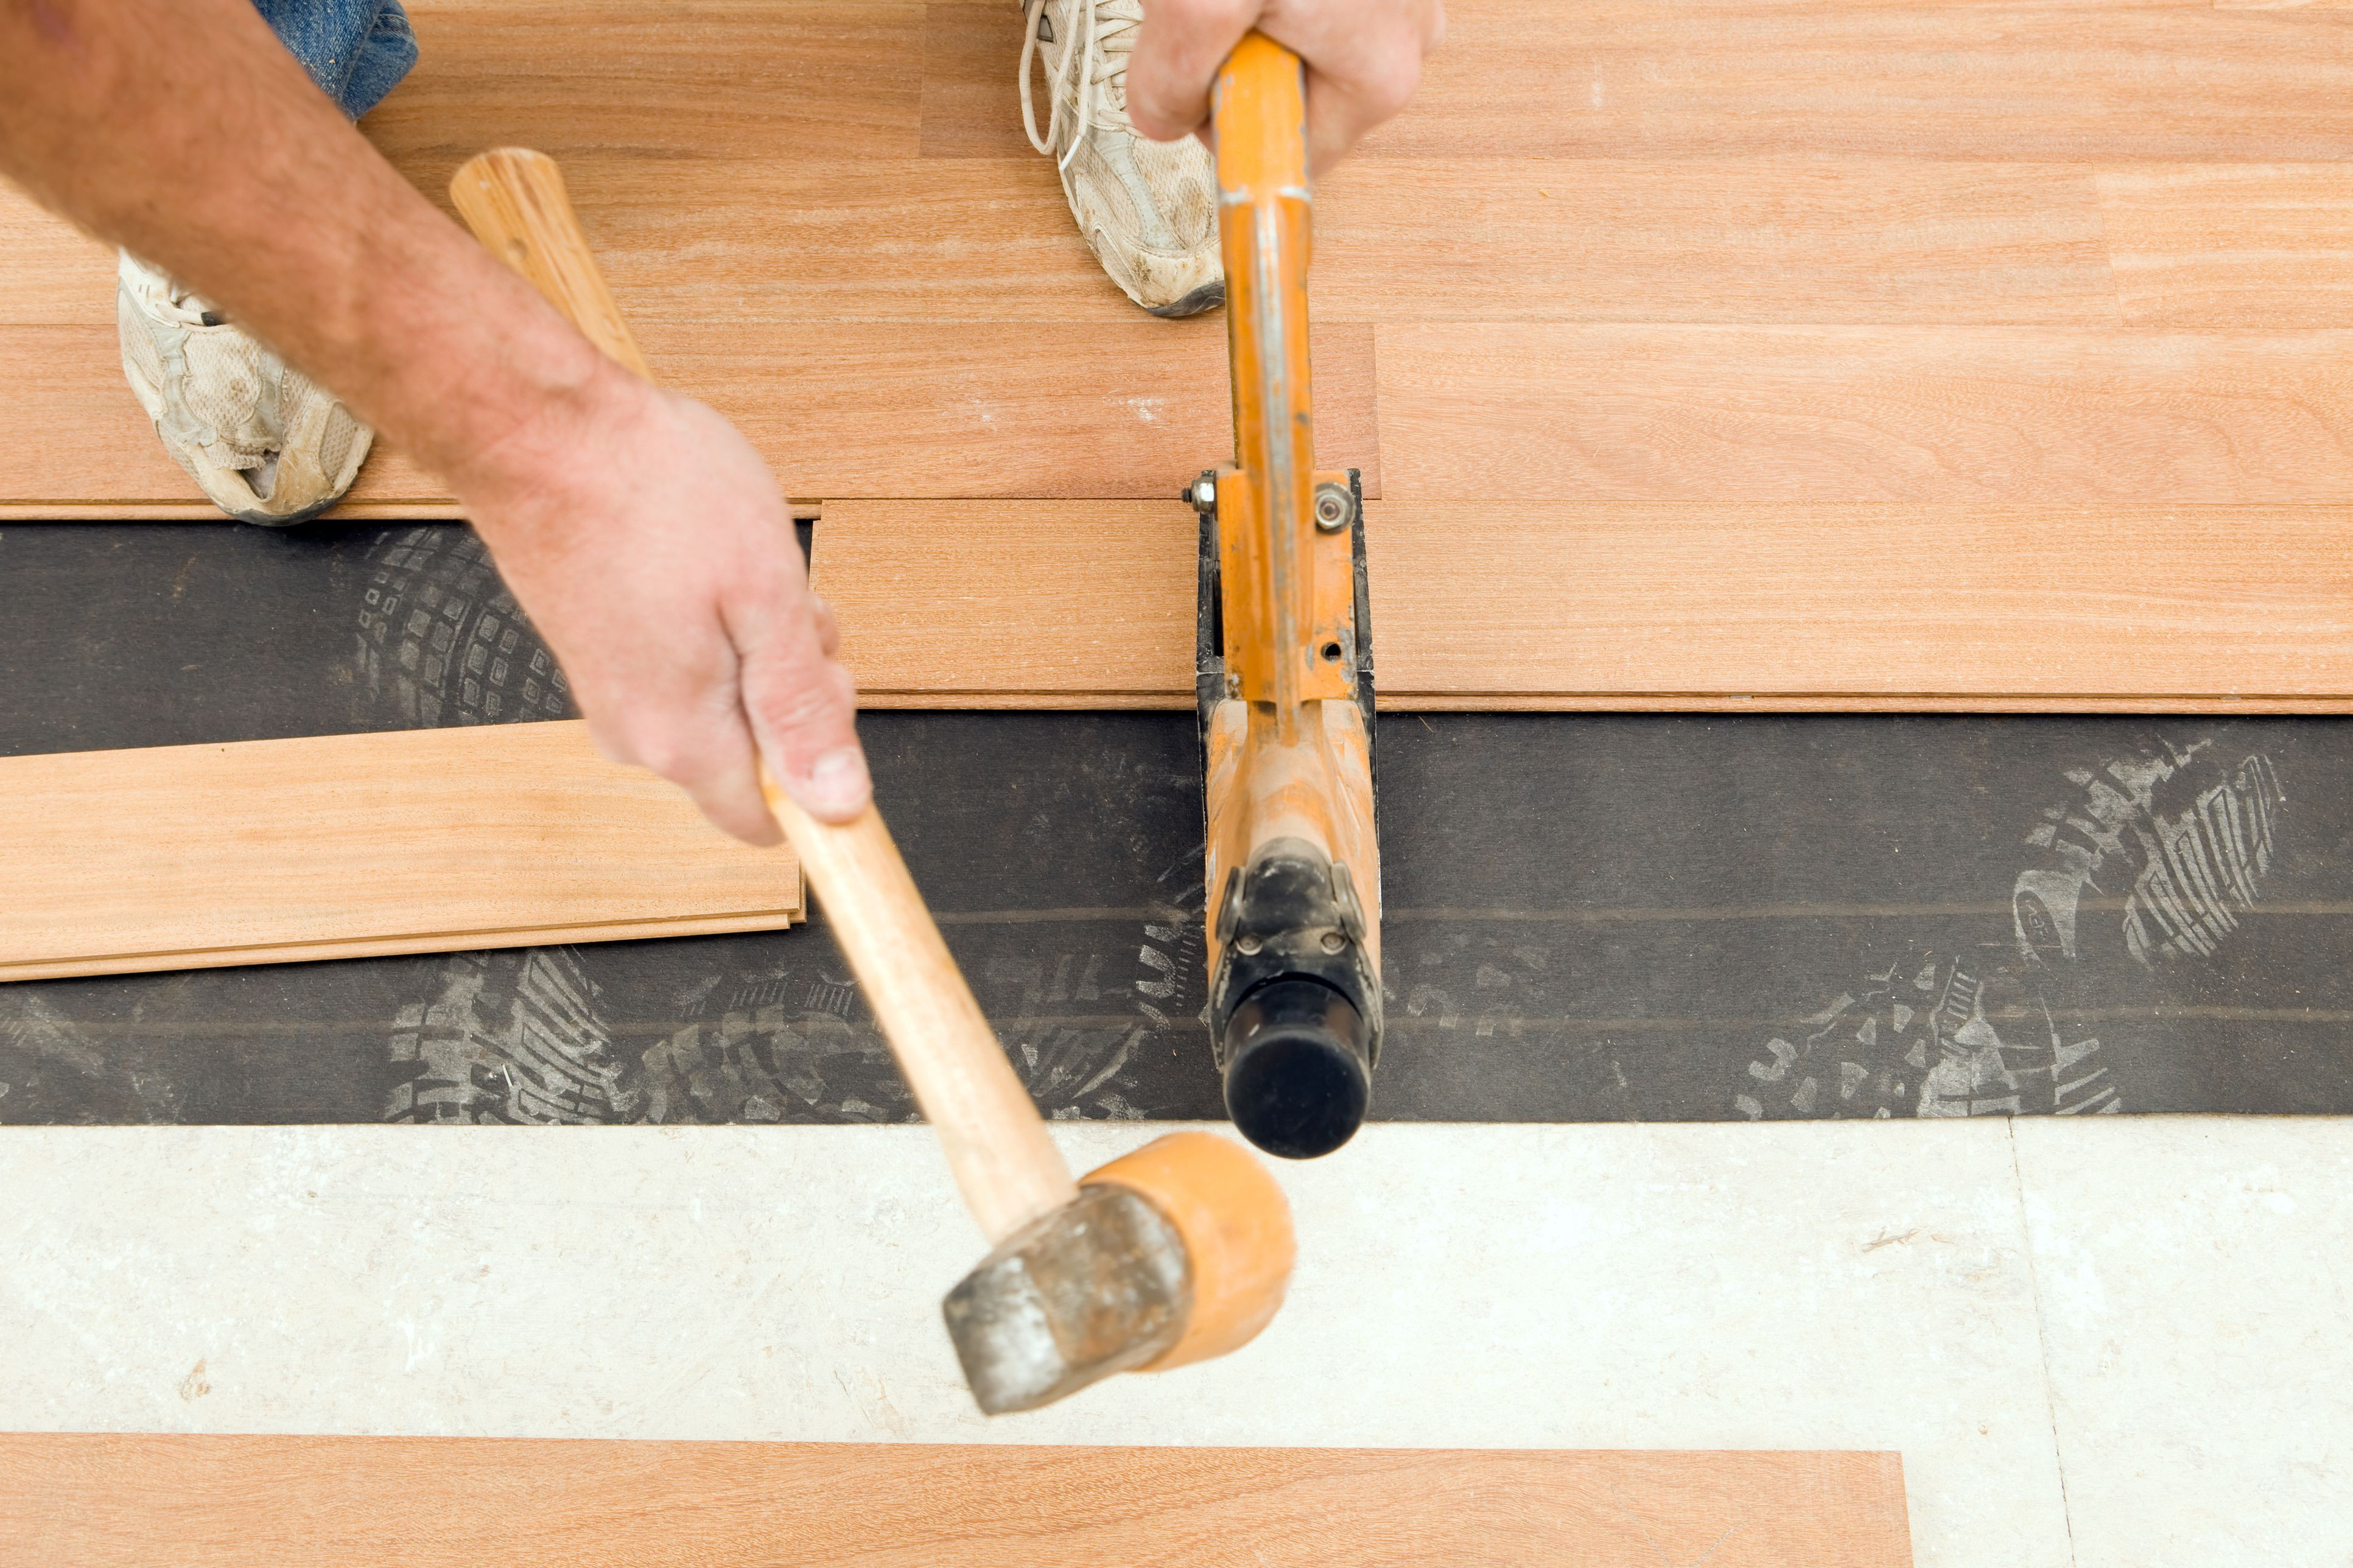 installing unfinished hardwood floors of the hardest wood flooring you can buy pertaining to worker installing new cumuru hardwood floor 186852280 5827f3bc5f9b58d5b11372fc